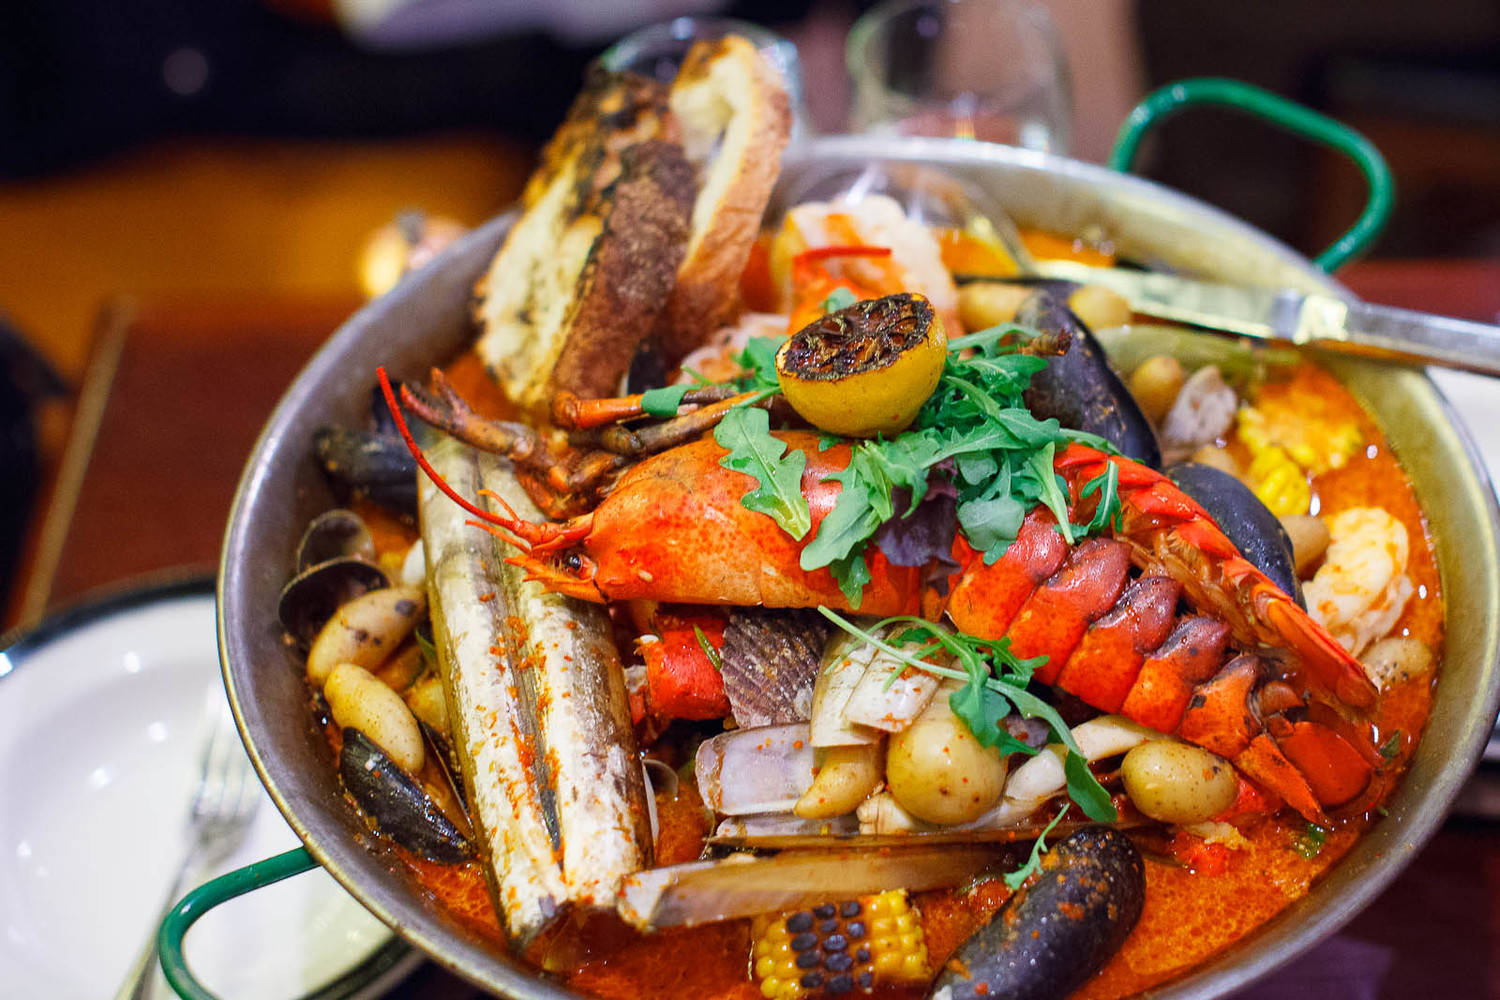 Harlem+chowder+-+lobster,+clams,+potatoes,+mussel+broth+($64).jpg